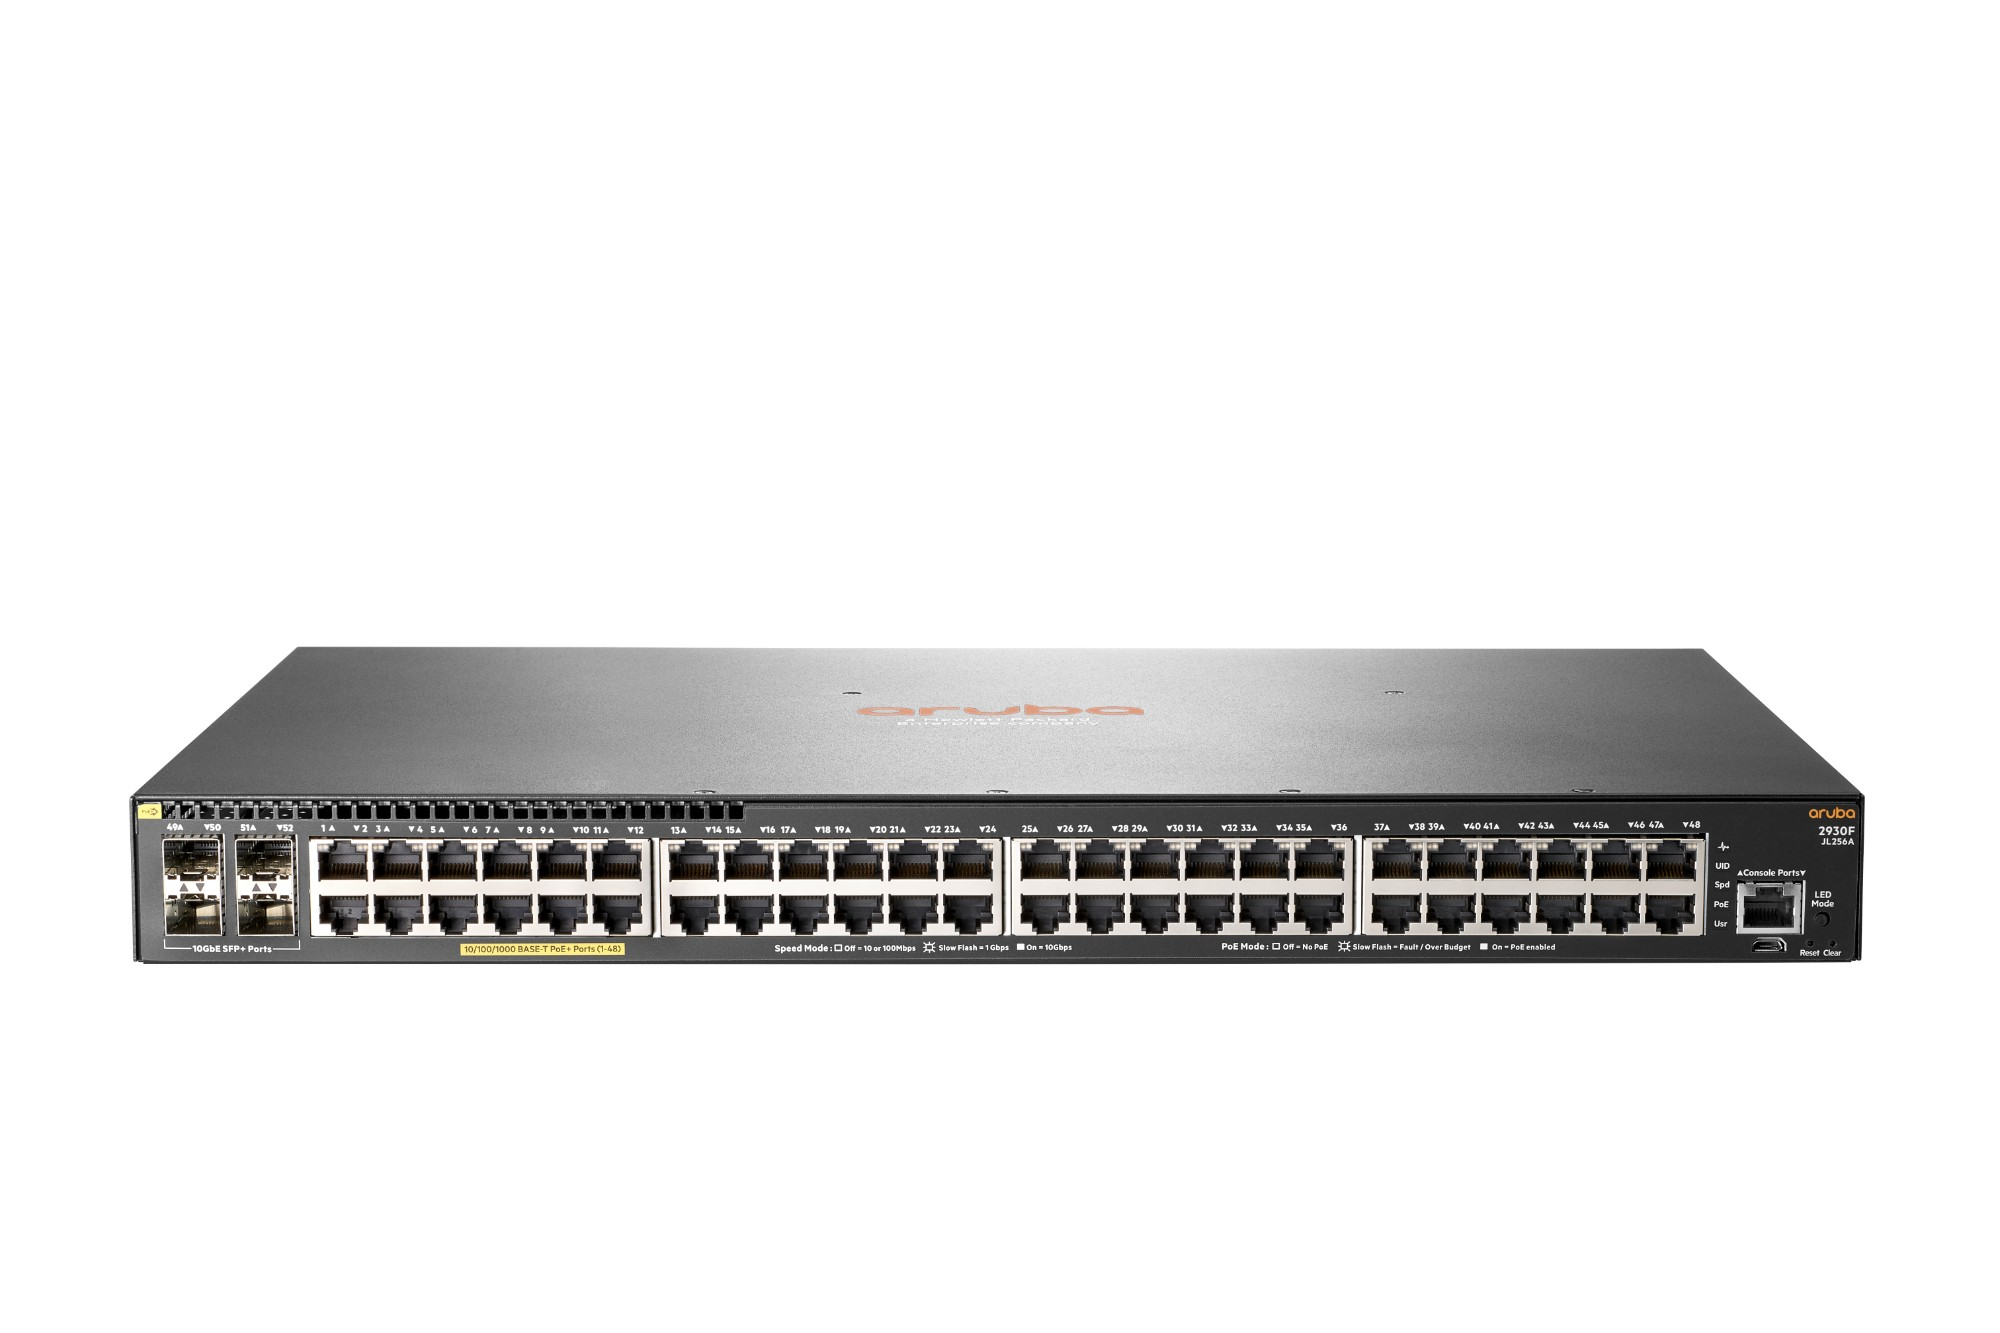 Hewlett Packard Enterprise Aruba 2930F 48G PoE+ 4SFP+ Managed L3 Gigabit Ethernet (10/100/1000) Power over Ethernet (PoE) 1U Grey